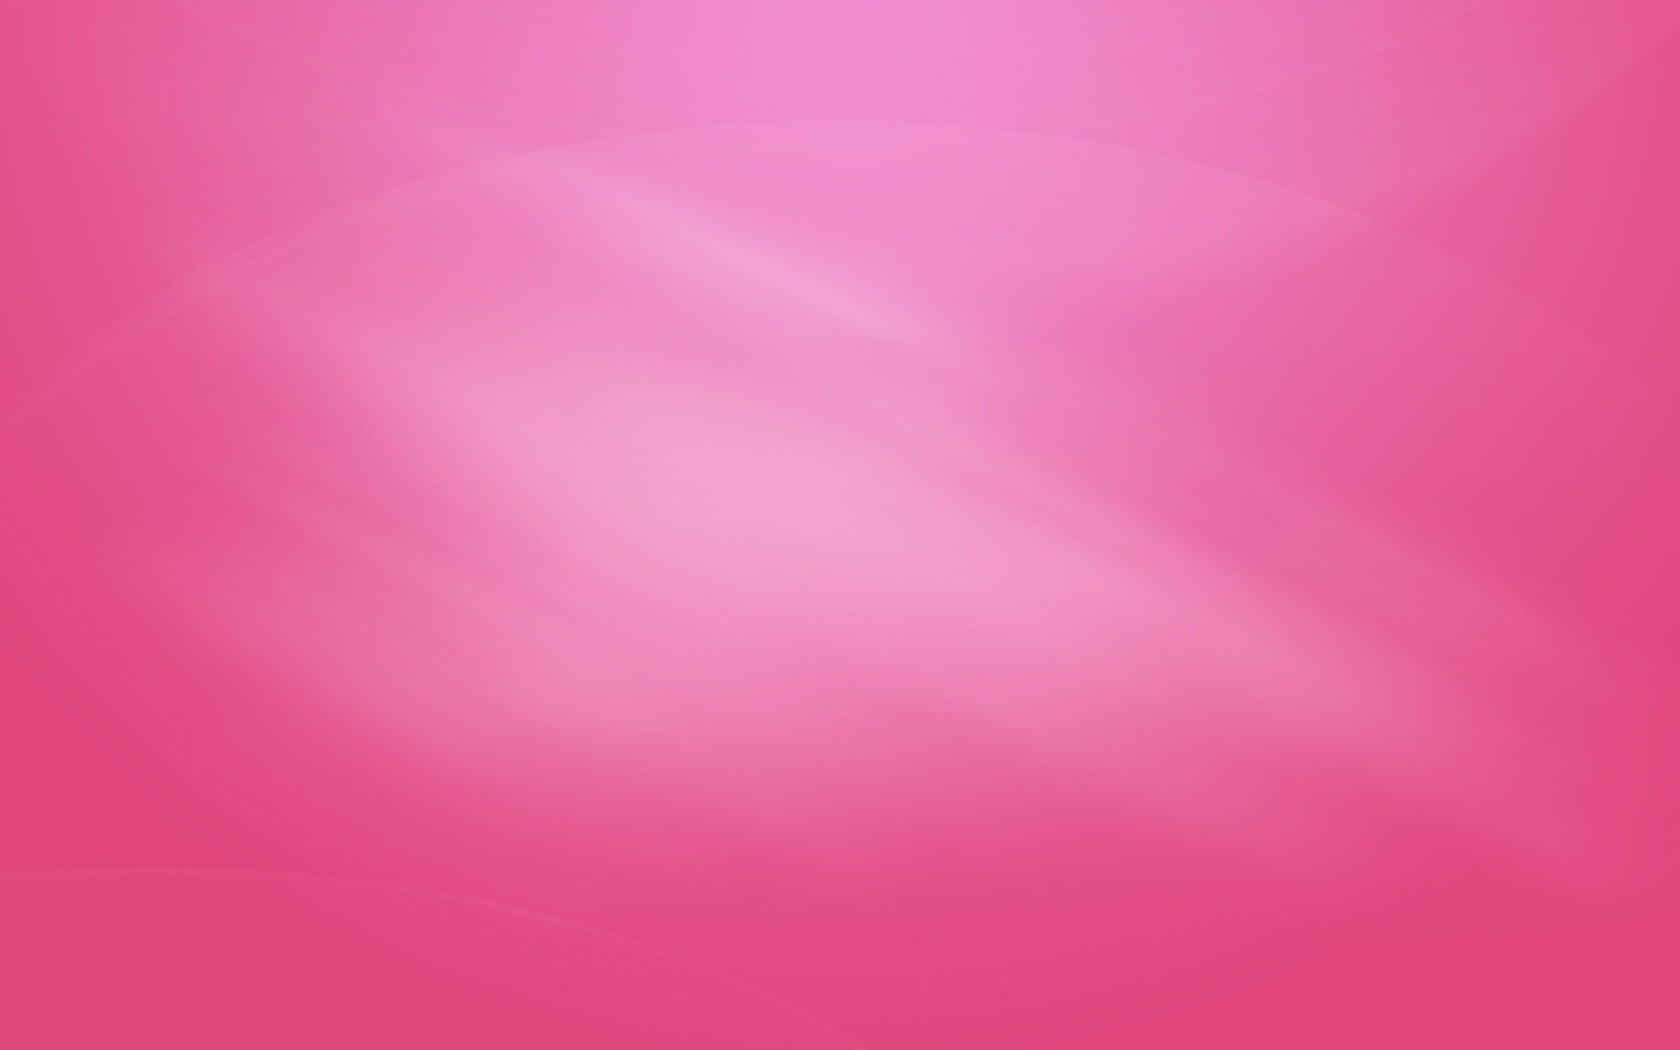 Fondos De Pantalla Rosa: Windows 7 Images Pink Computer Background HD Wallpaper And